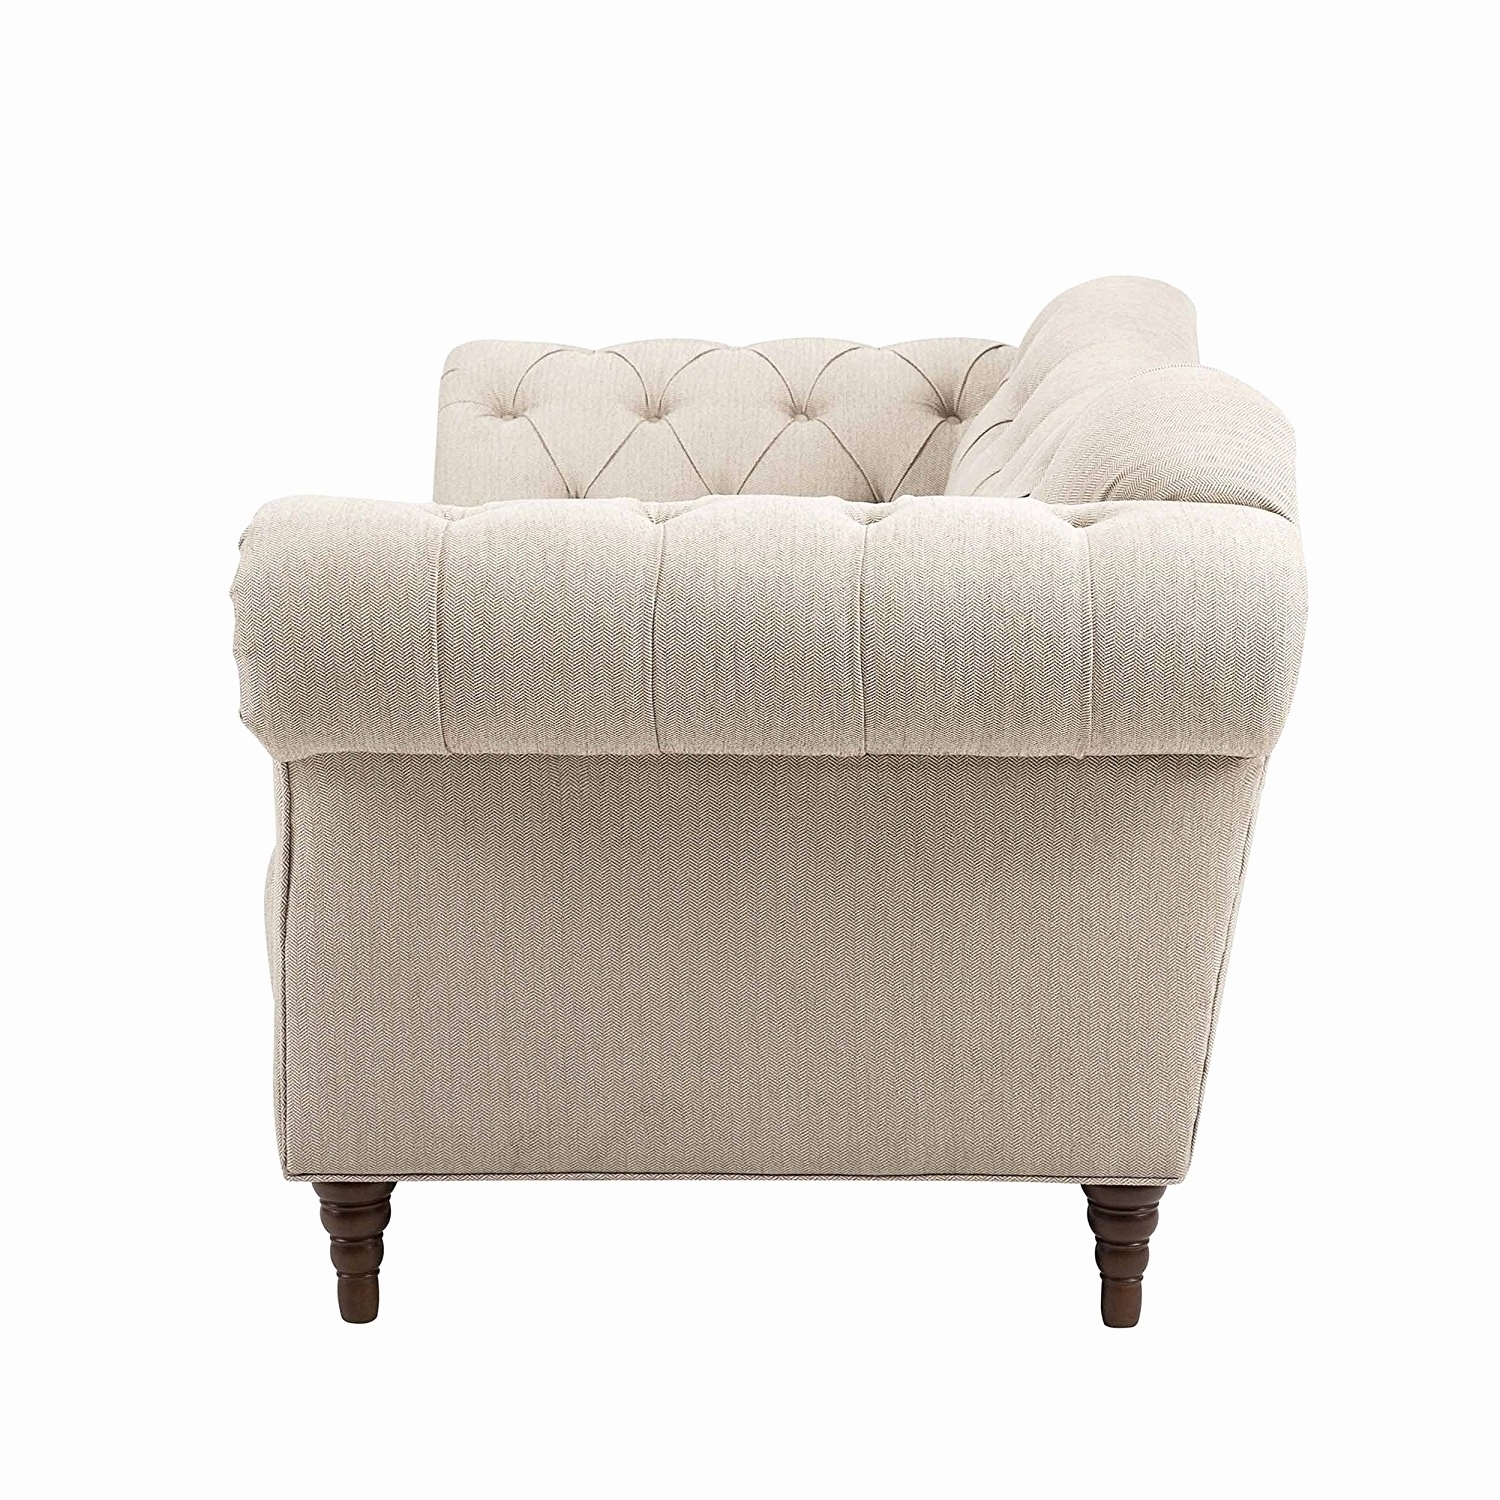 Chintz Fabric Sofas Throughout Preferred Armchair : Chintz Fabric Sofas Calico Meaning In Hindi What Is (View 6 of 15)